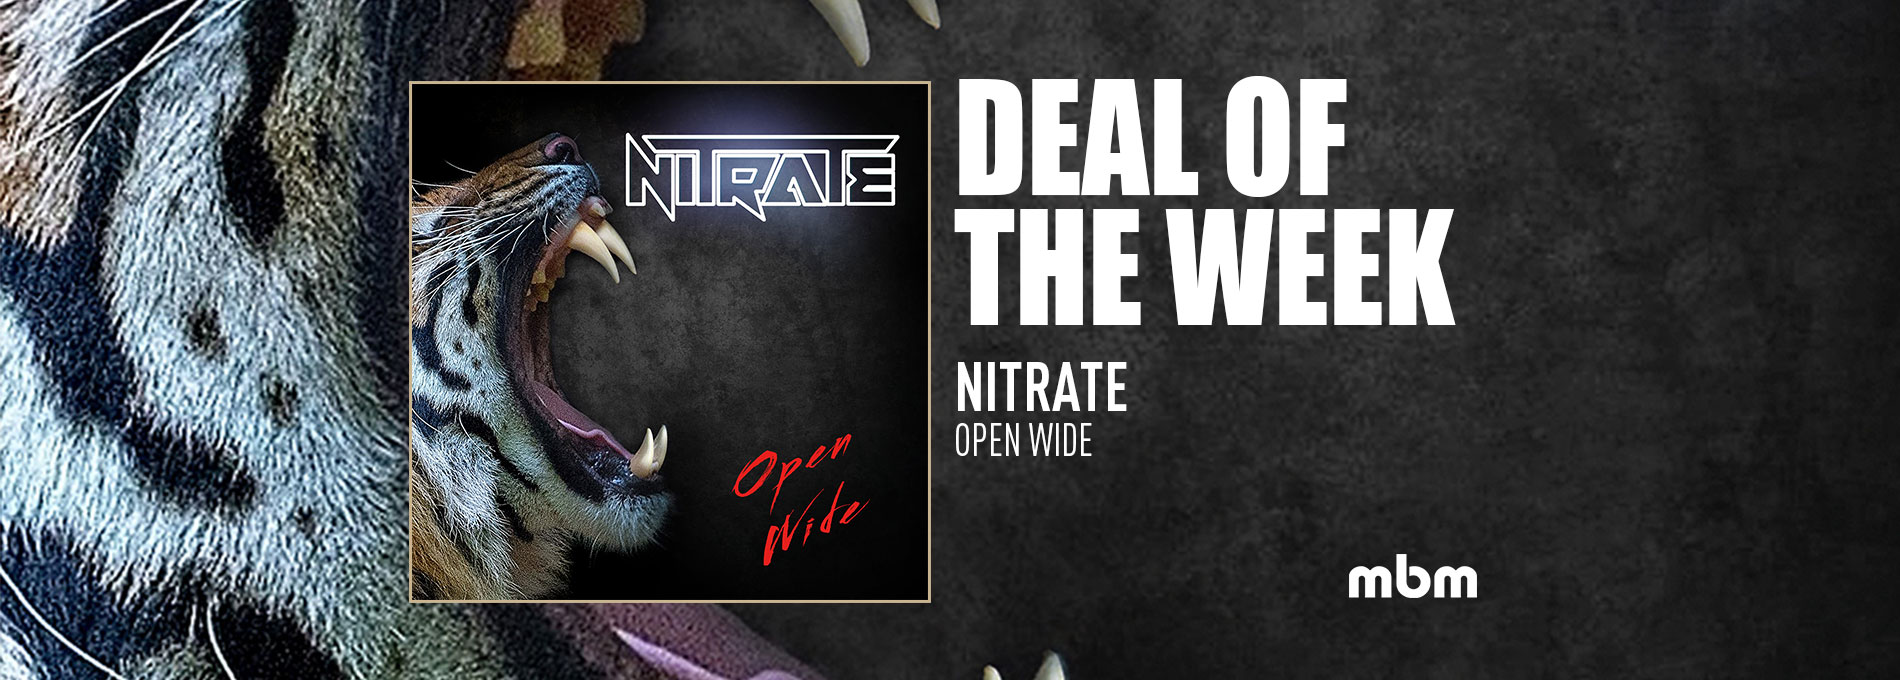 Deal Of The Week: NITRATE - Open Wide